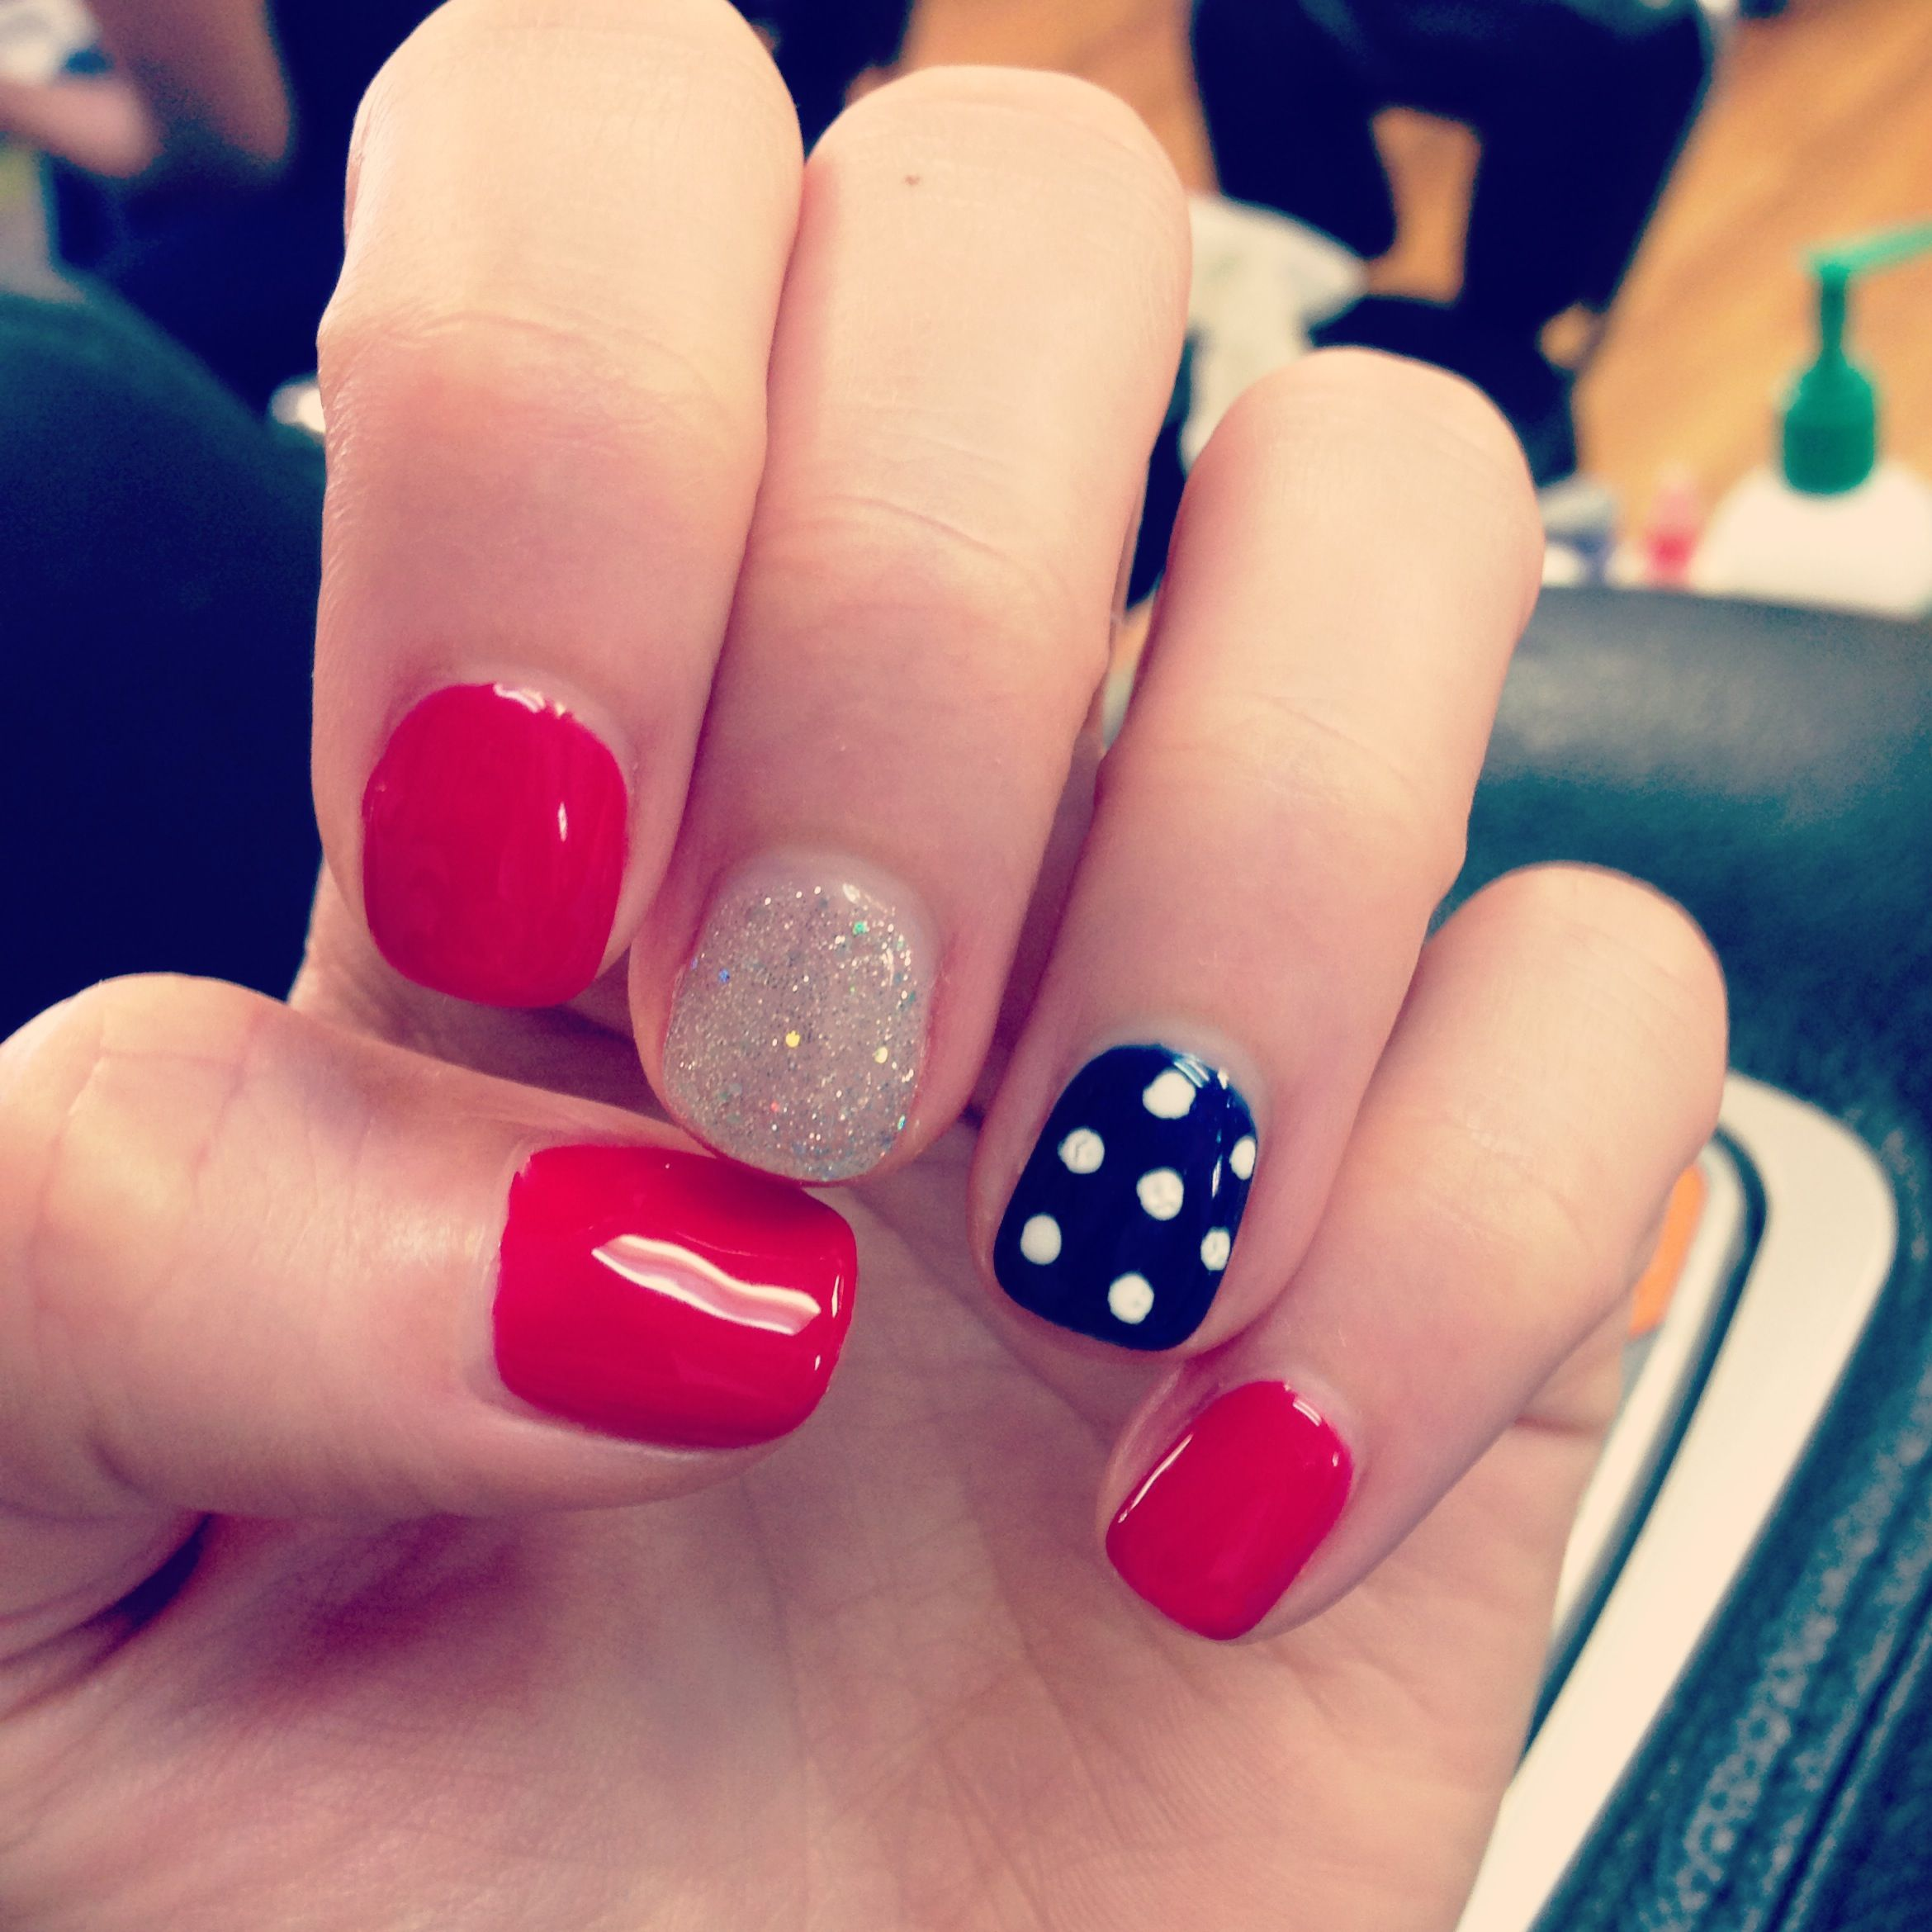 Cutie nails red white blue nails pinterest red white blue cutie nails red white blue prinsesfo Image collections